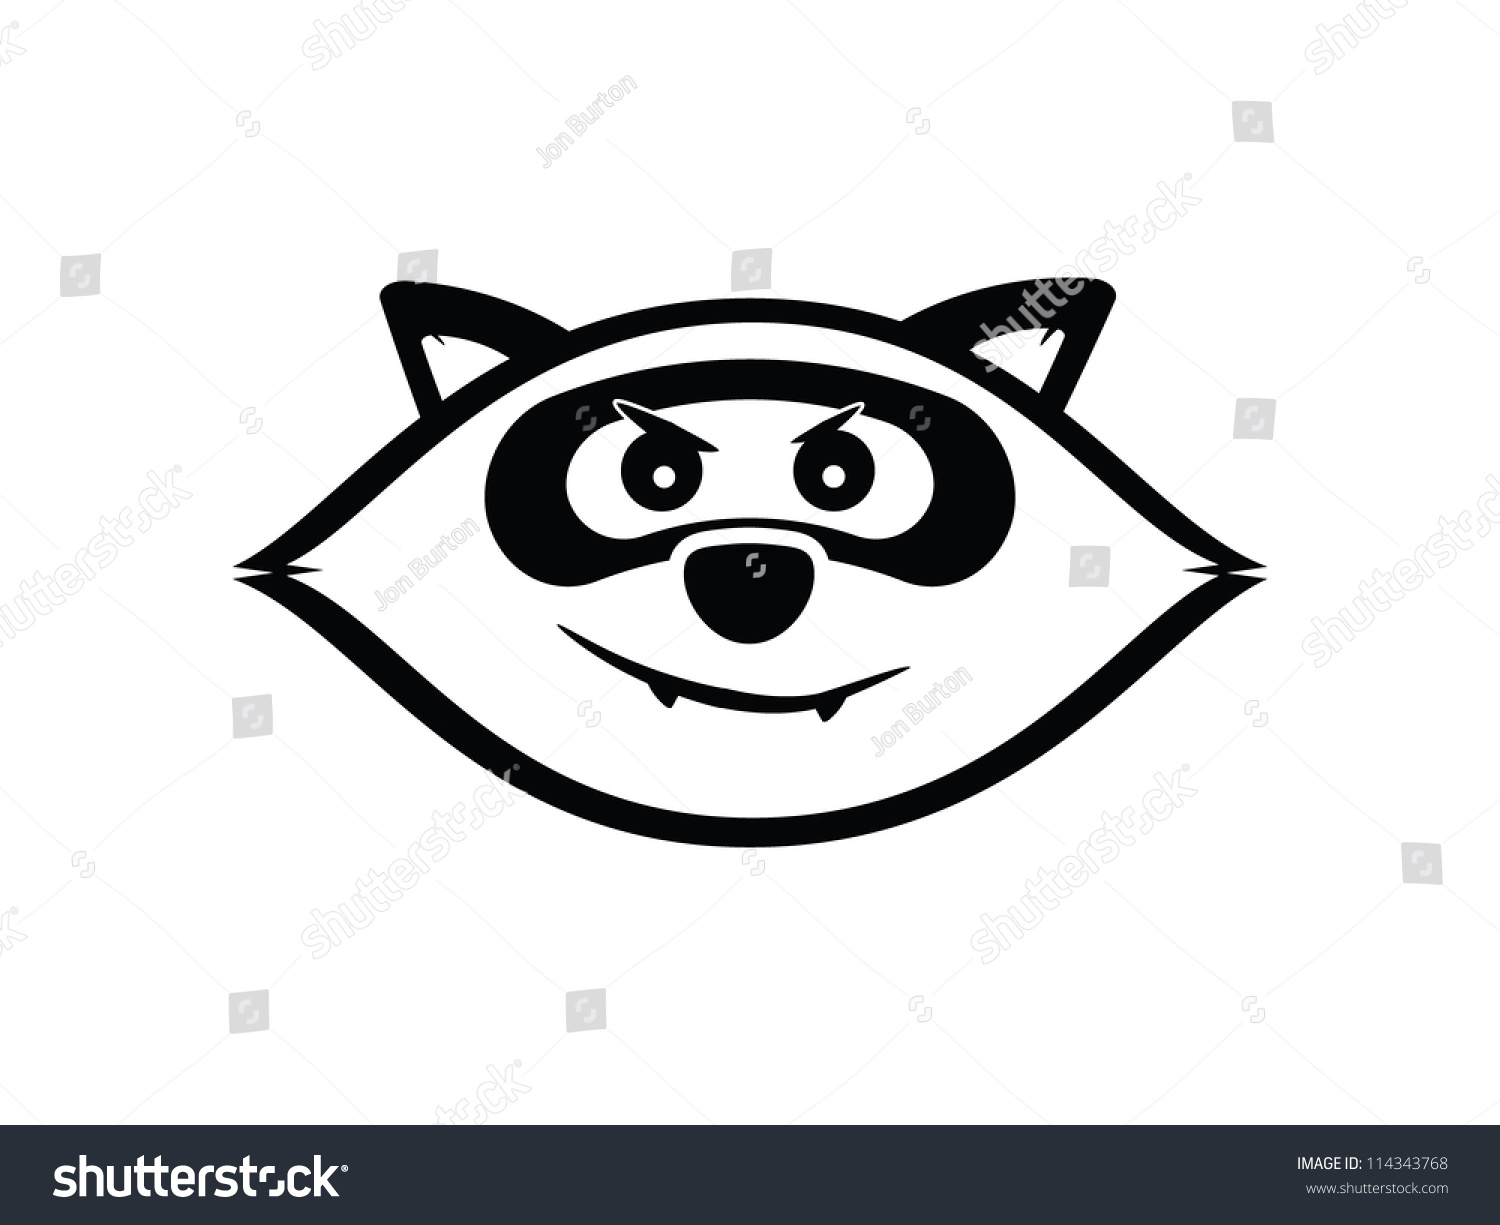 ... Black And White raccoon isolated stock vectors & vector clip art Raccoon Face Clip Art Black And White